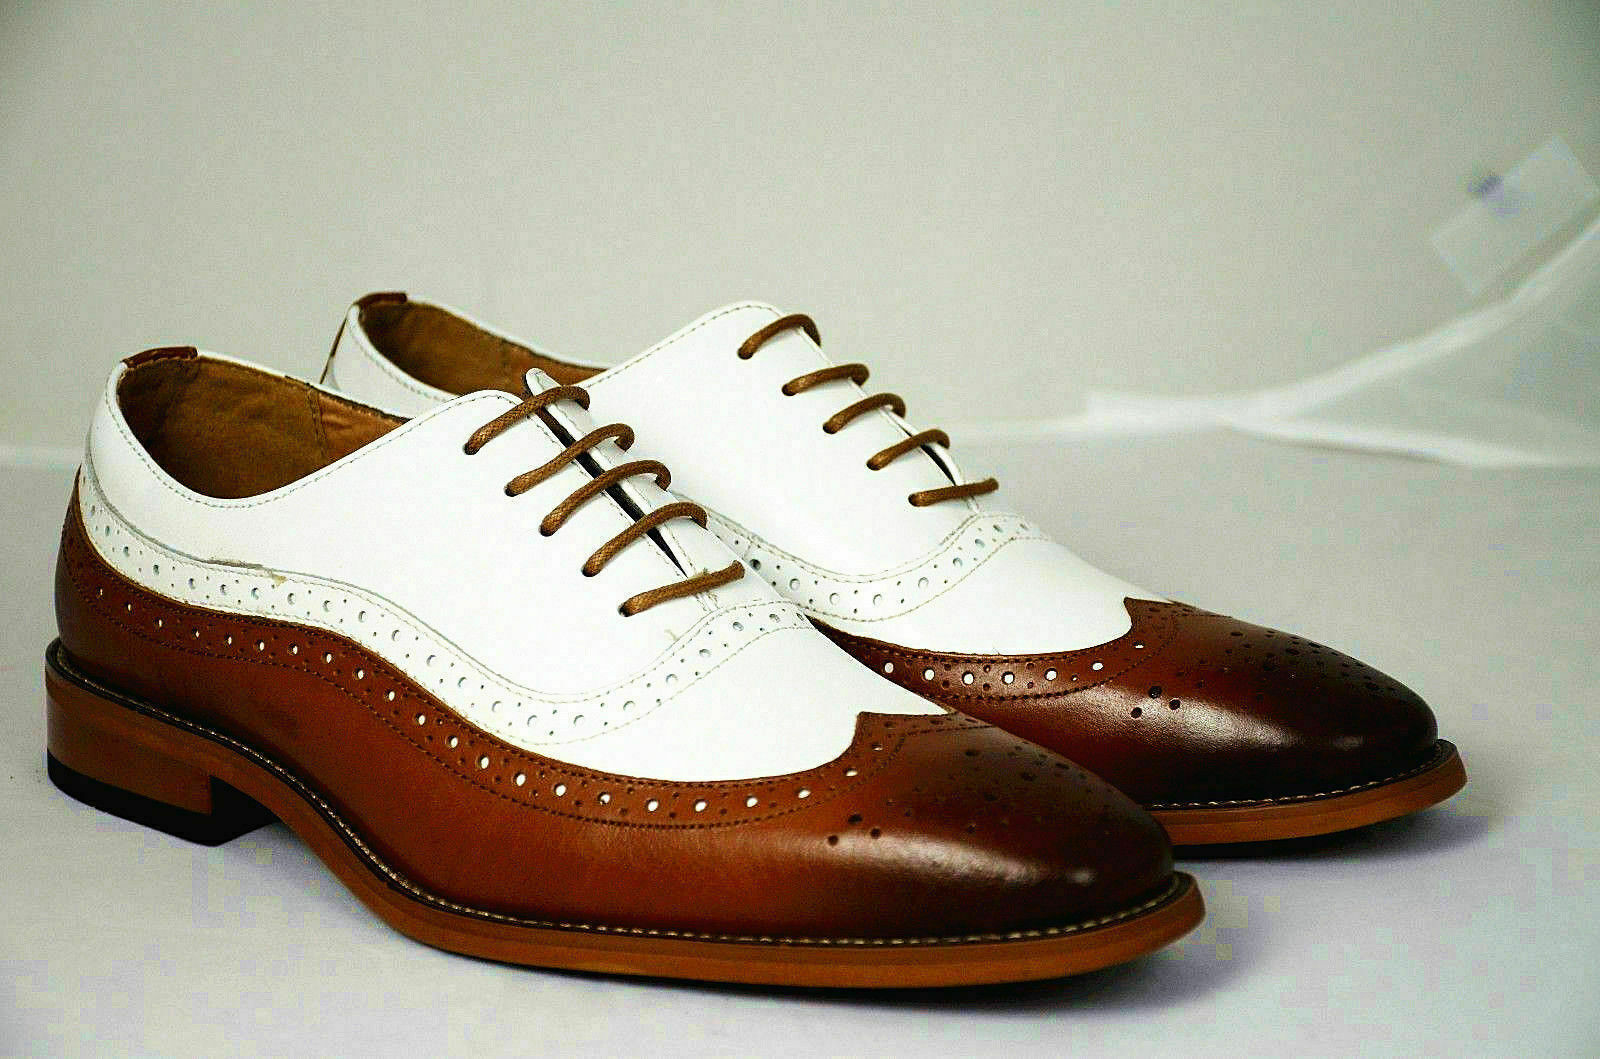 Mens Handmade shoes Two Tone shoes Dark Tan & White Brogue Formal LaceUp Boot New